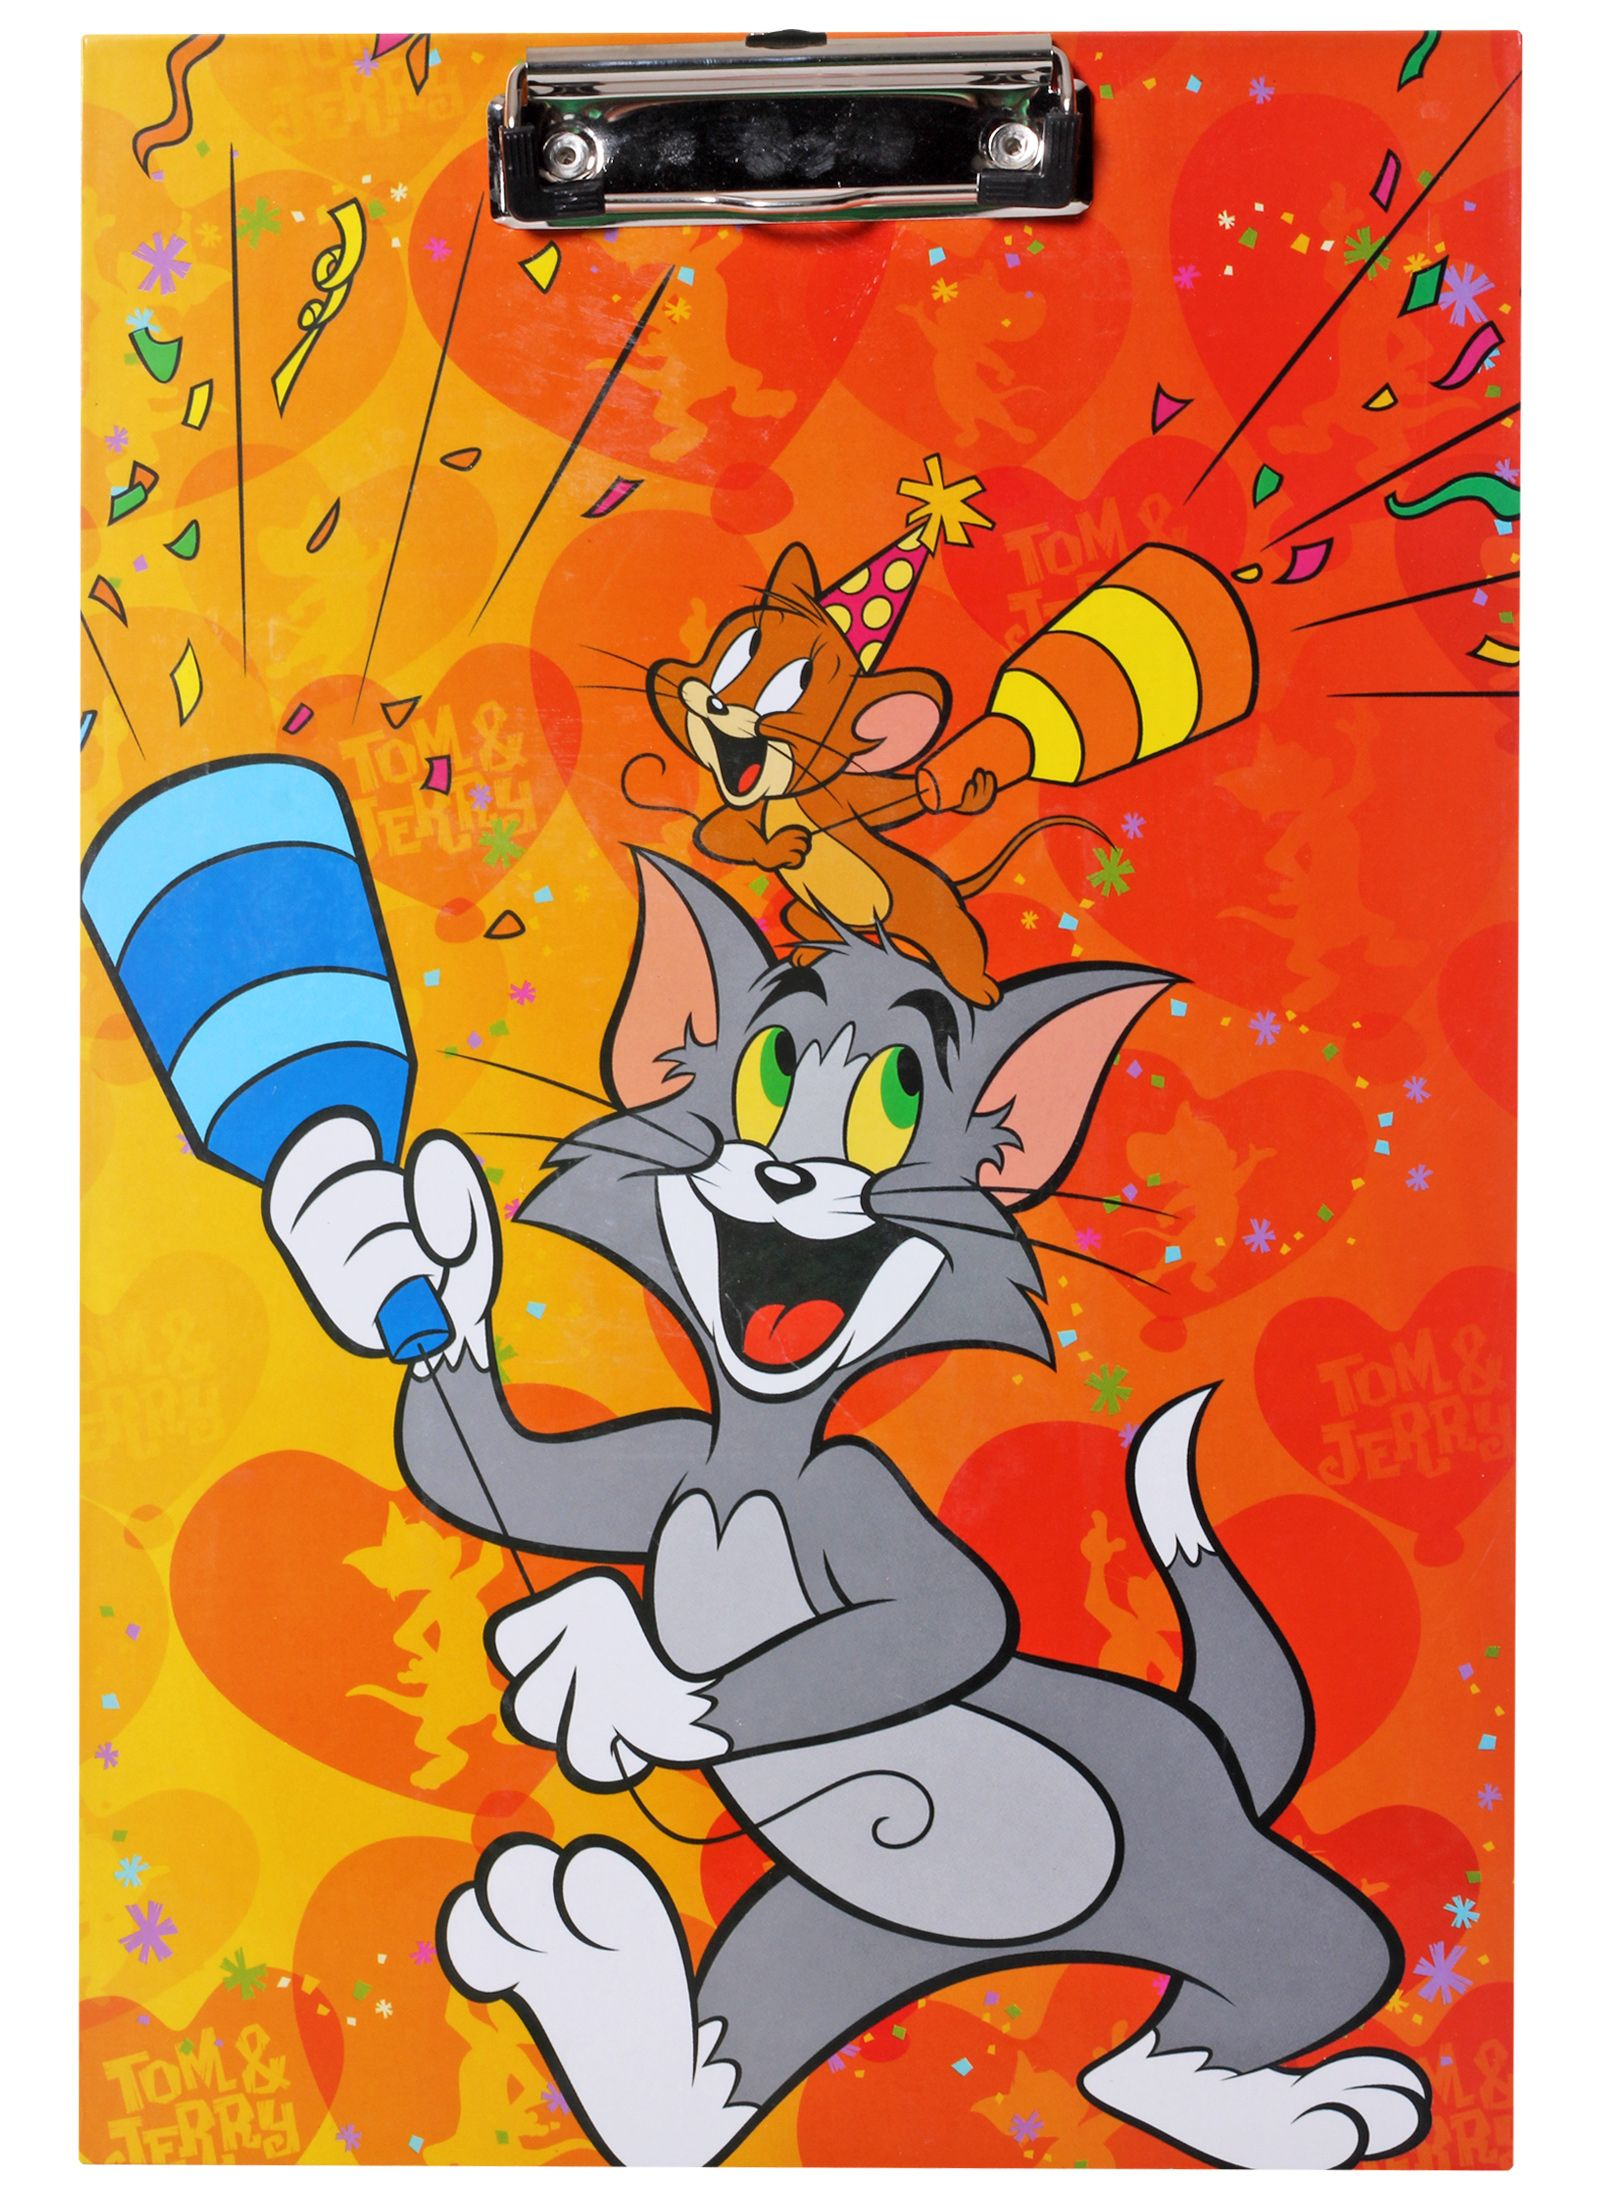 _tomandjerry_ video